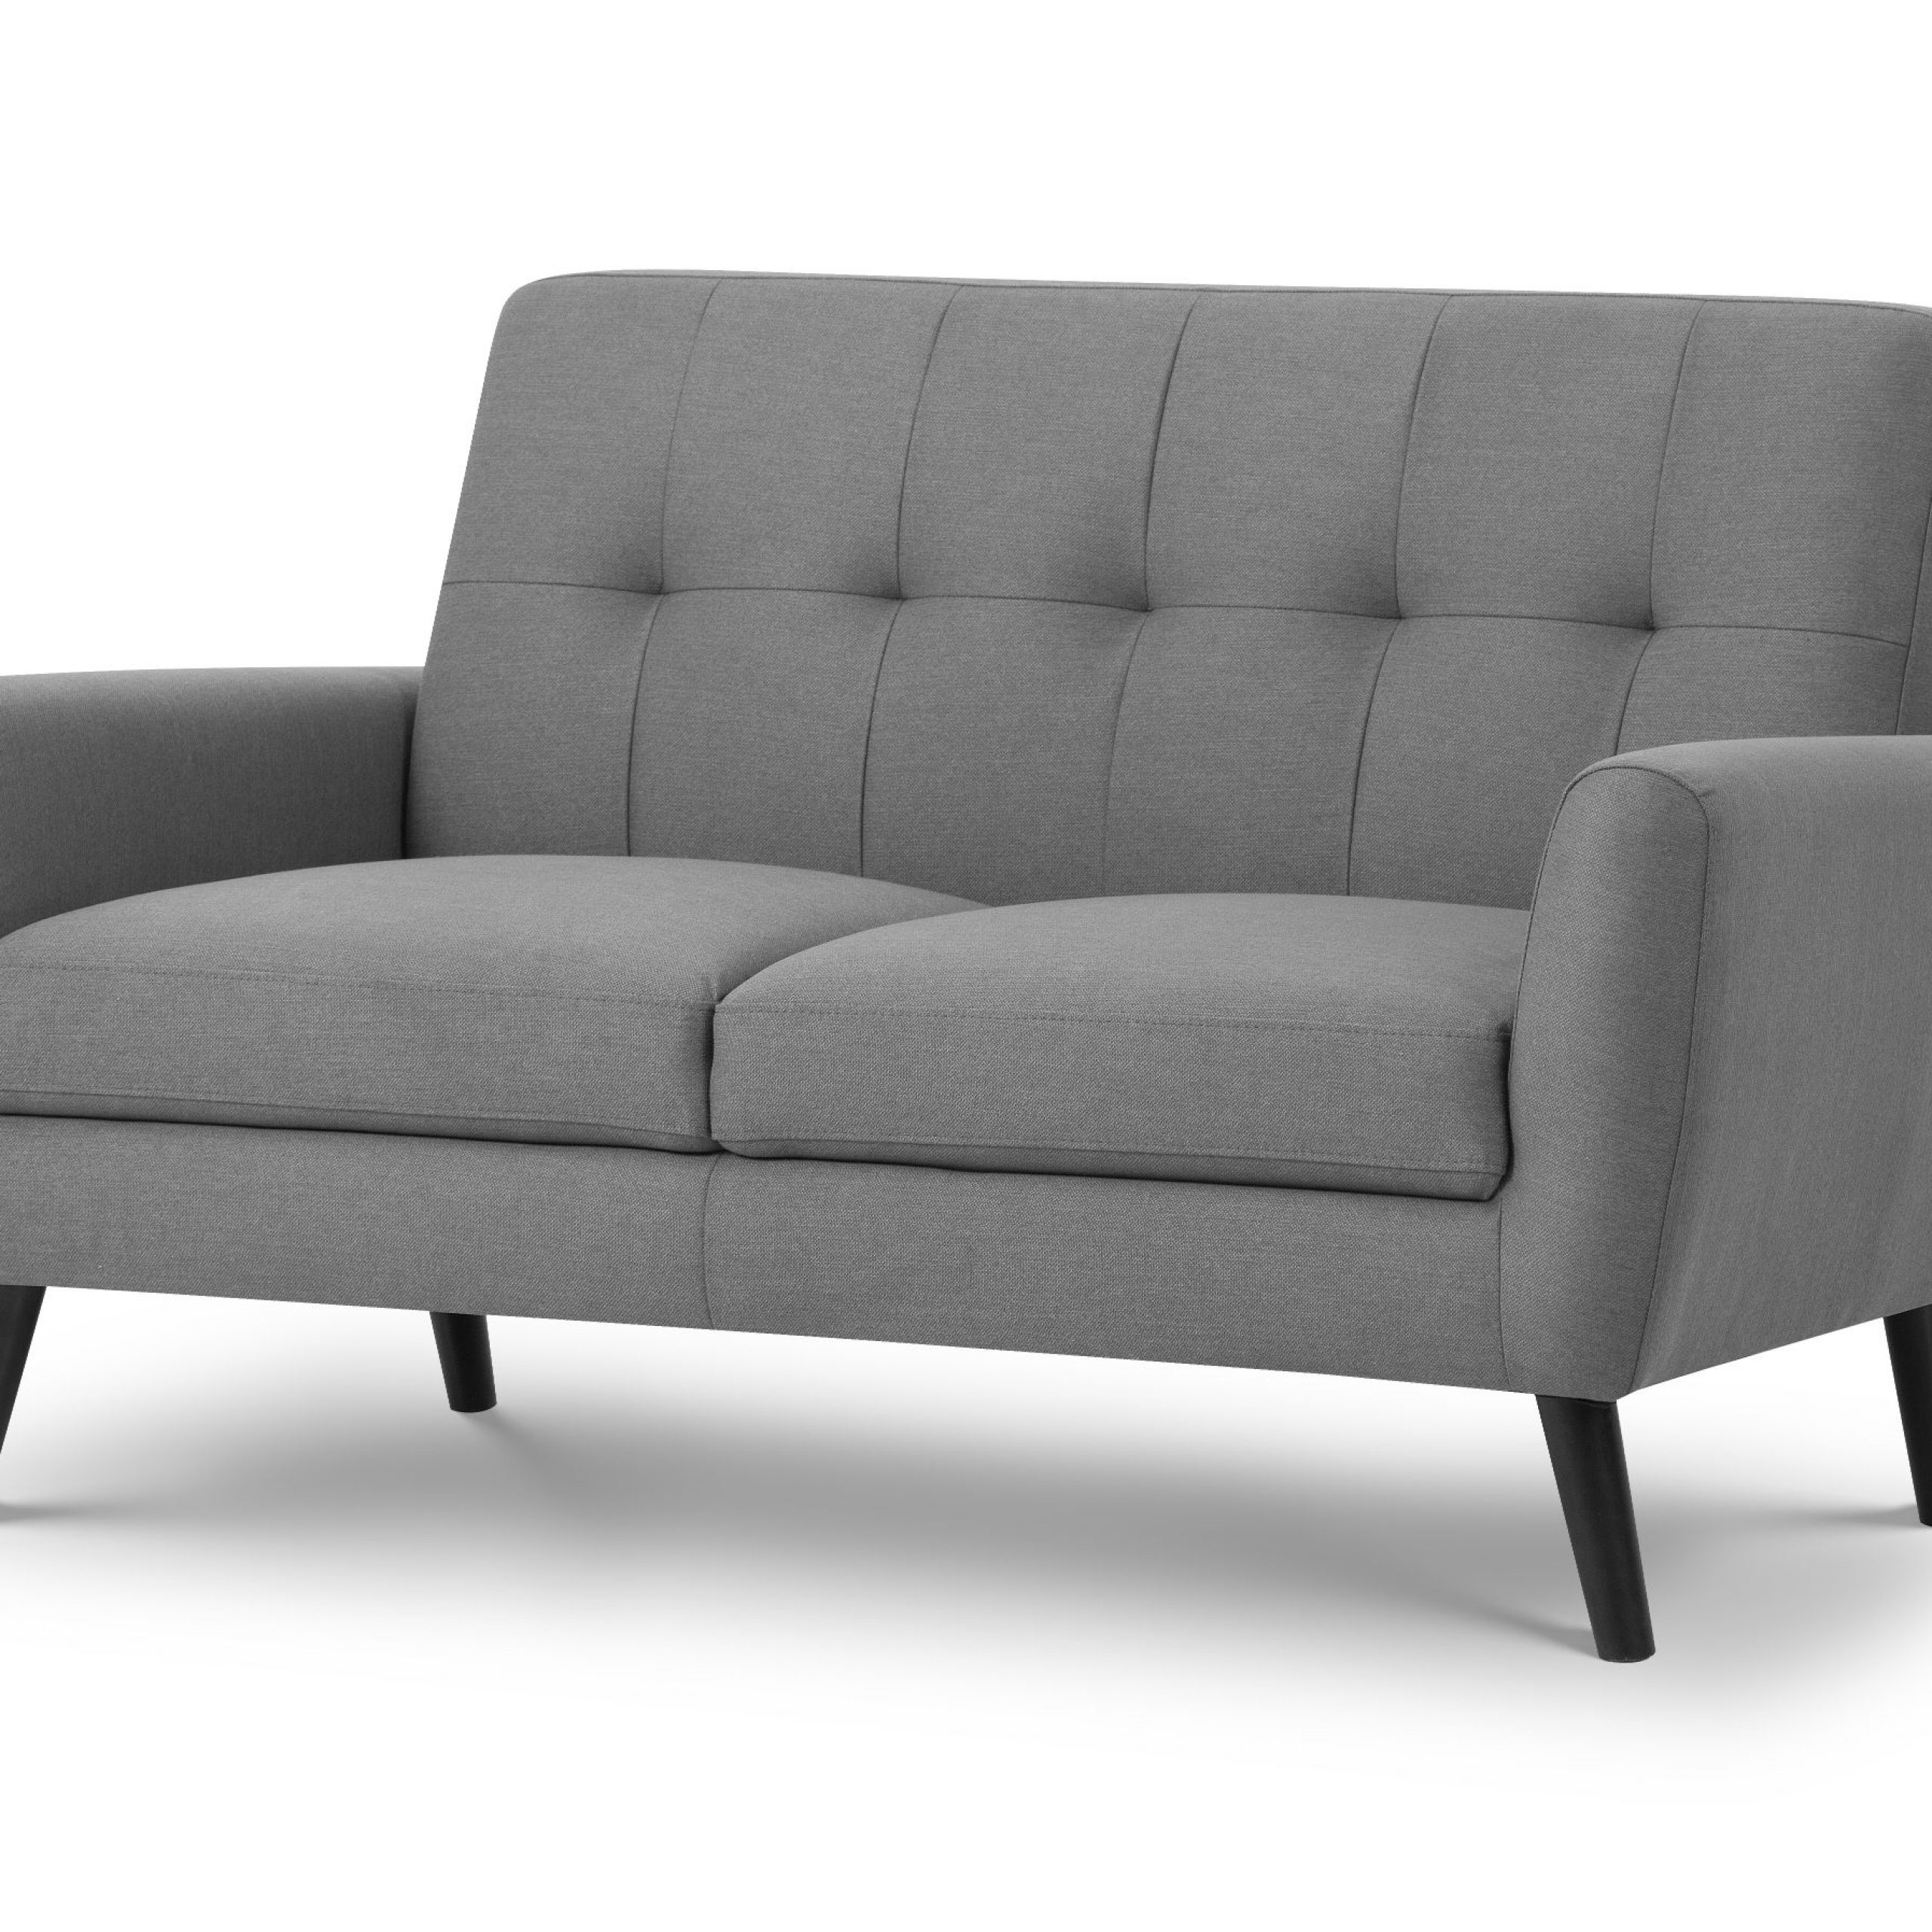 Monza 2 Seater Compact Retro Sofa – Flanagans Furniture Within Monza Tv Stands (View 17 of 20)